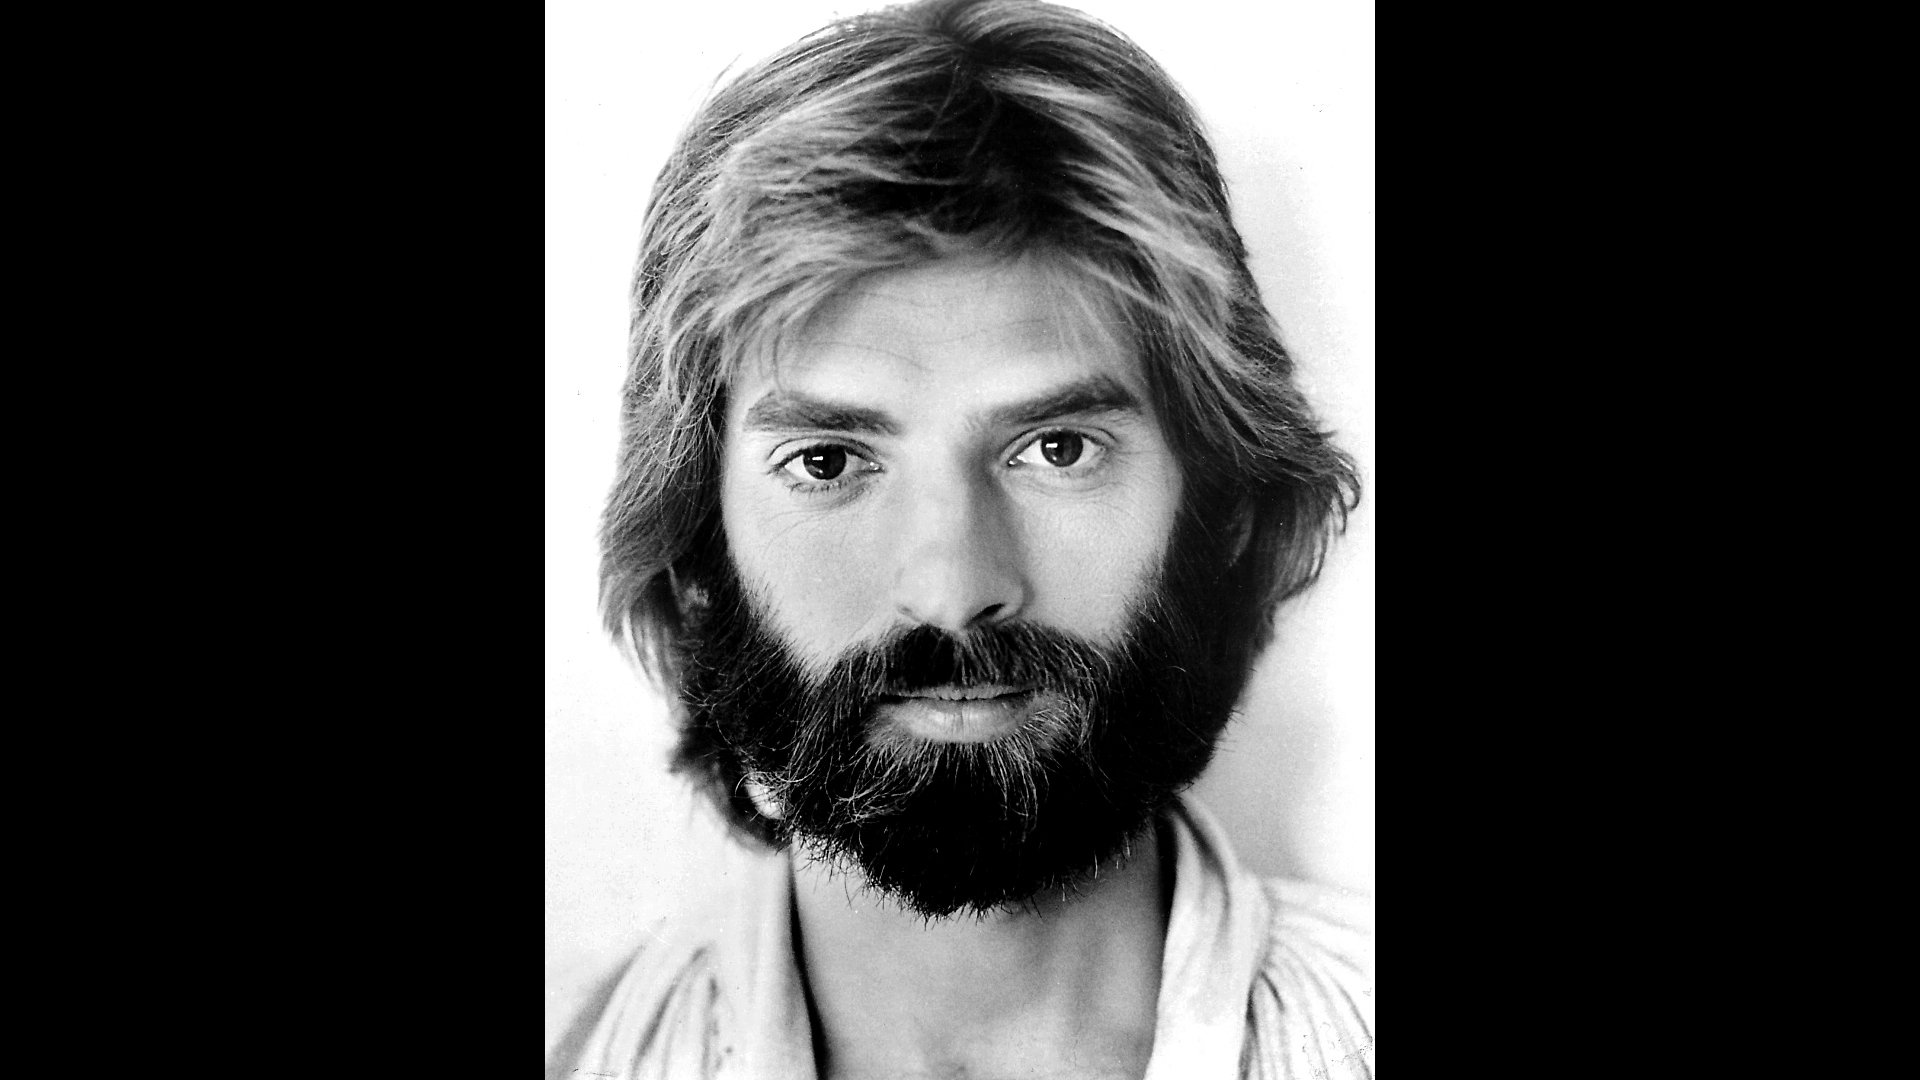 Kenny Loggins - Foto Columbia Records - Original publicity photo - Creative Commons